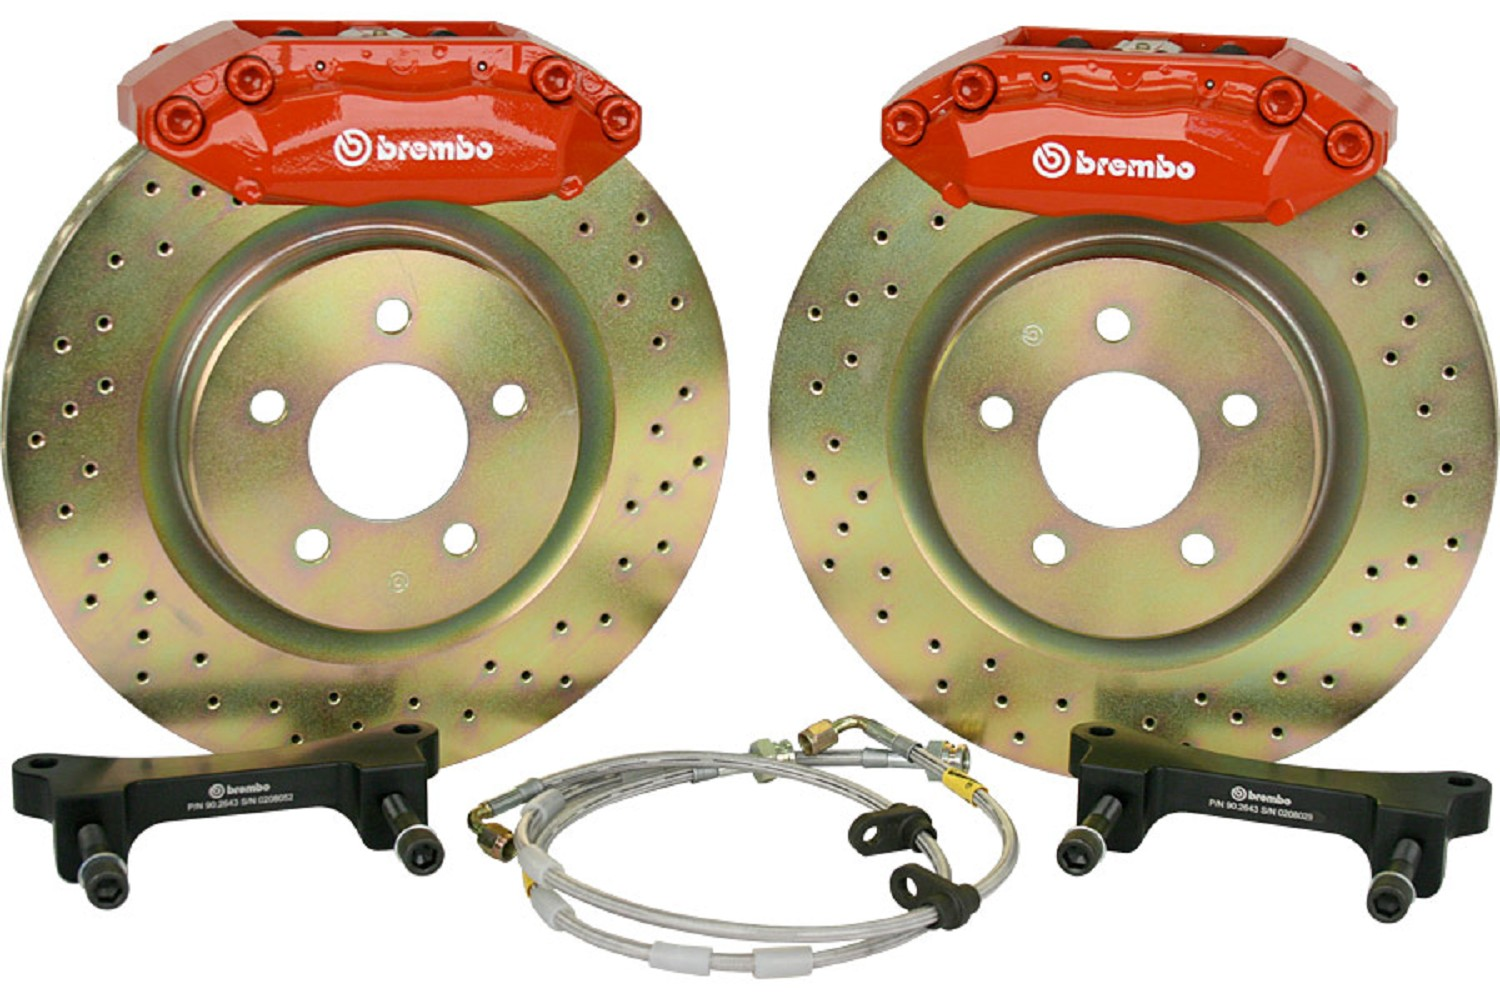 "Brembo Ford Fusion 13"" Front Brake 4 Piston Kit - Red (06-12"